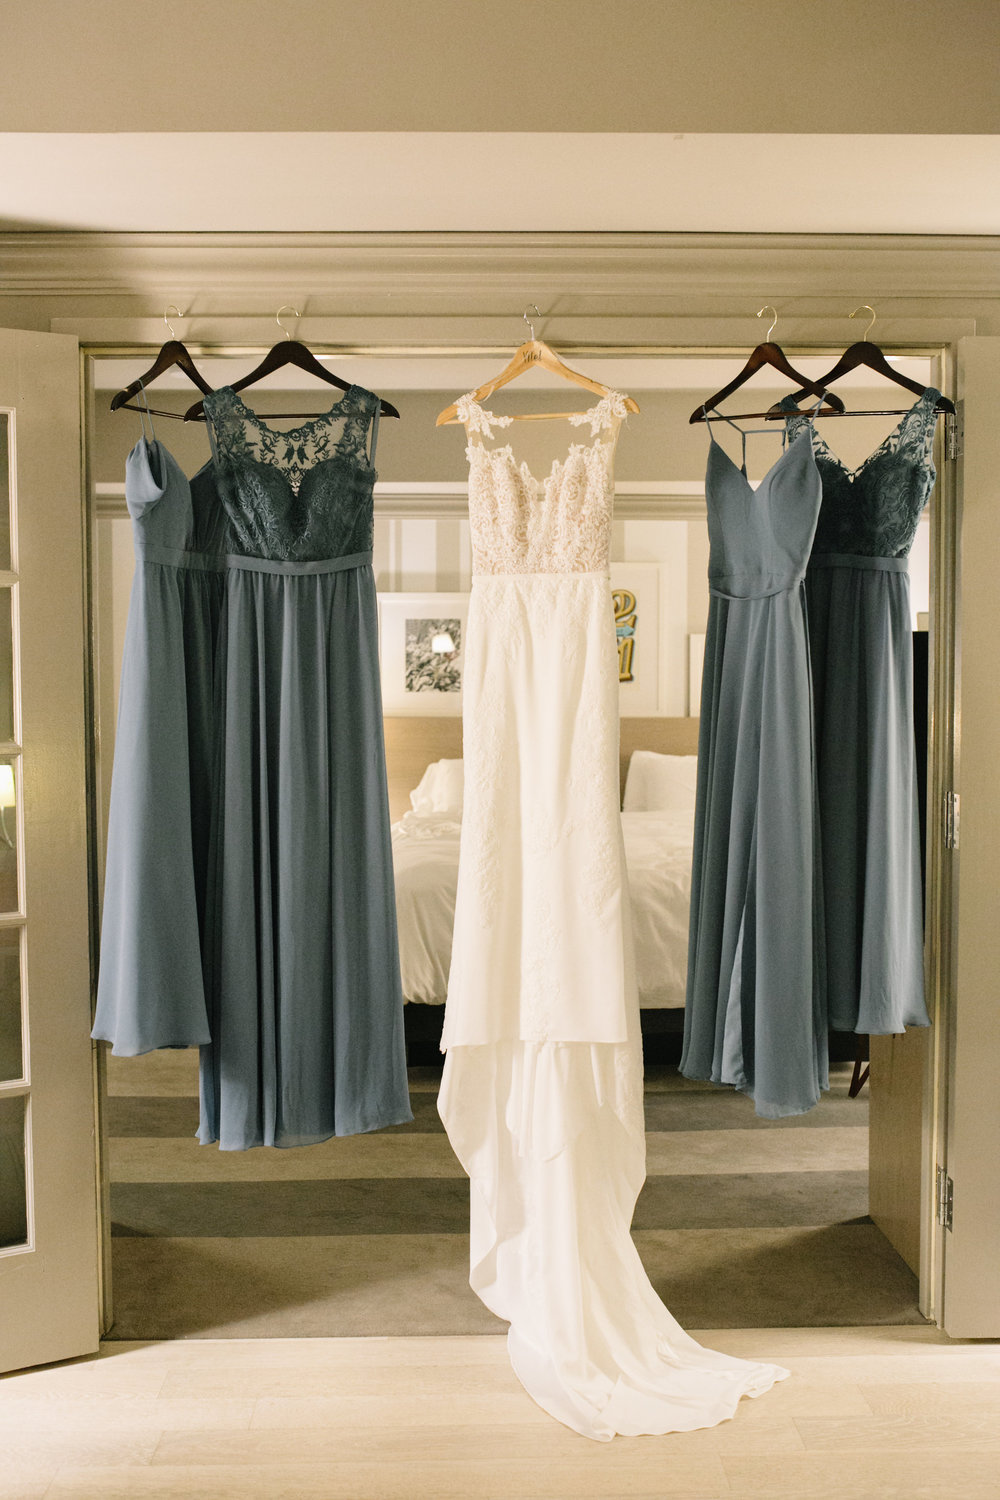 dresses hanging up::  Whims and Joy Minneapolis photographer :: Sixpence Events & Planning Minnesota wedding planner :: Nicollet Island Pavilion.jpg